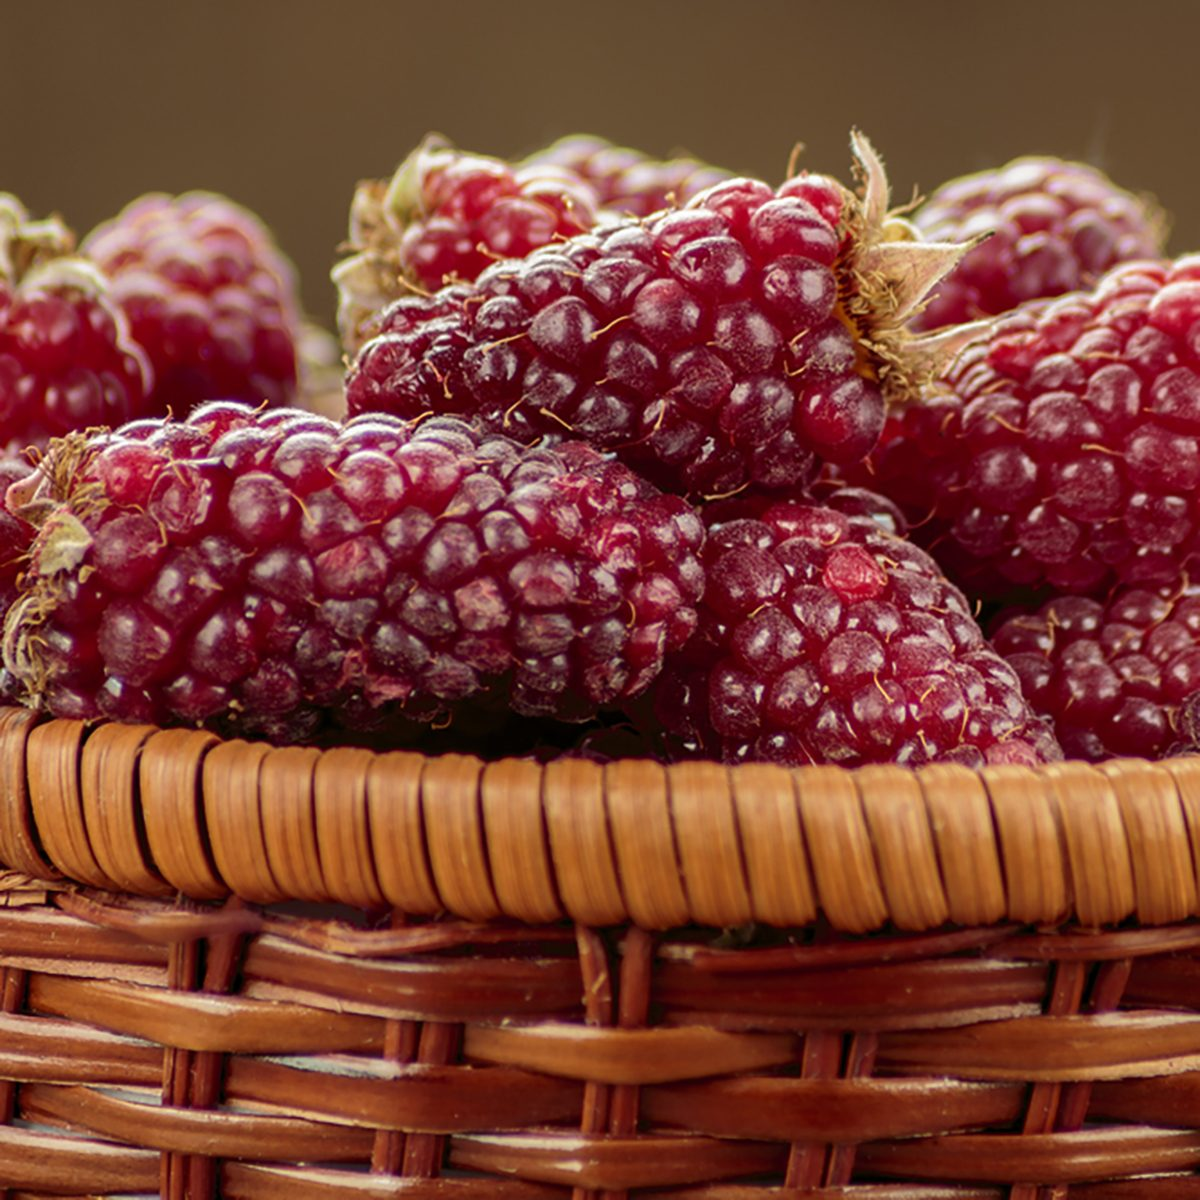 Tayberry a hybrid of raspberries and blackberries in wicker basket